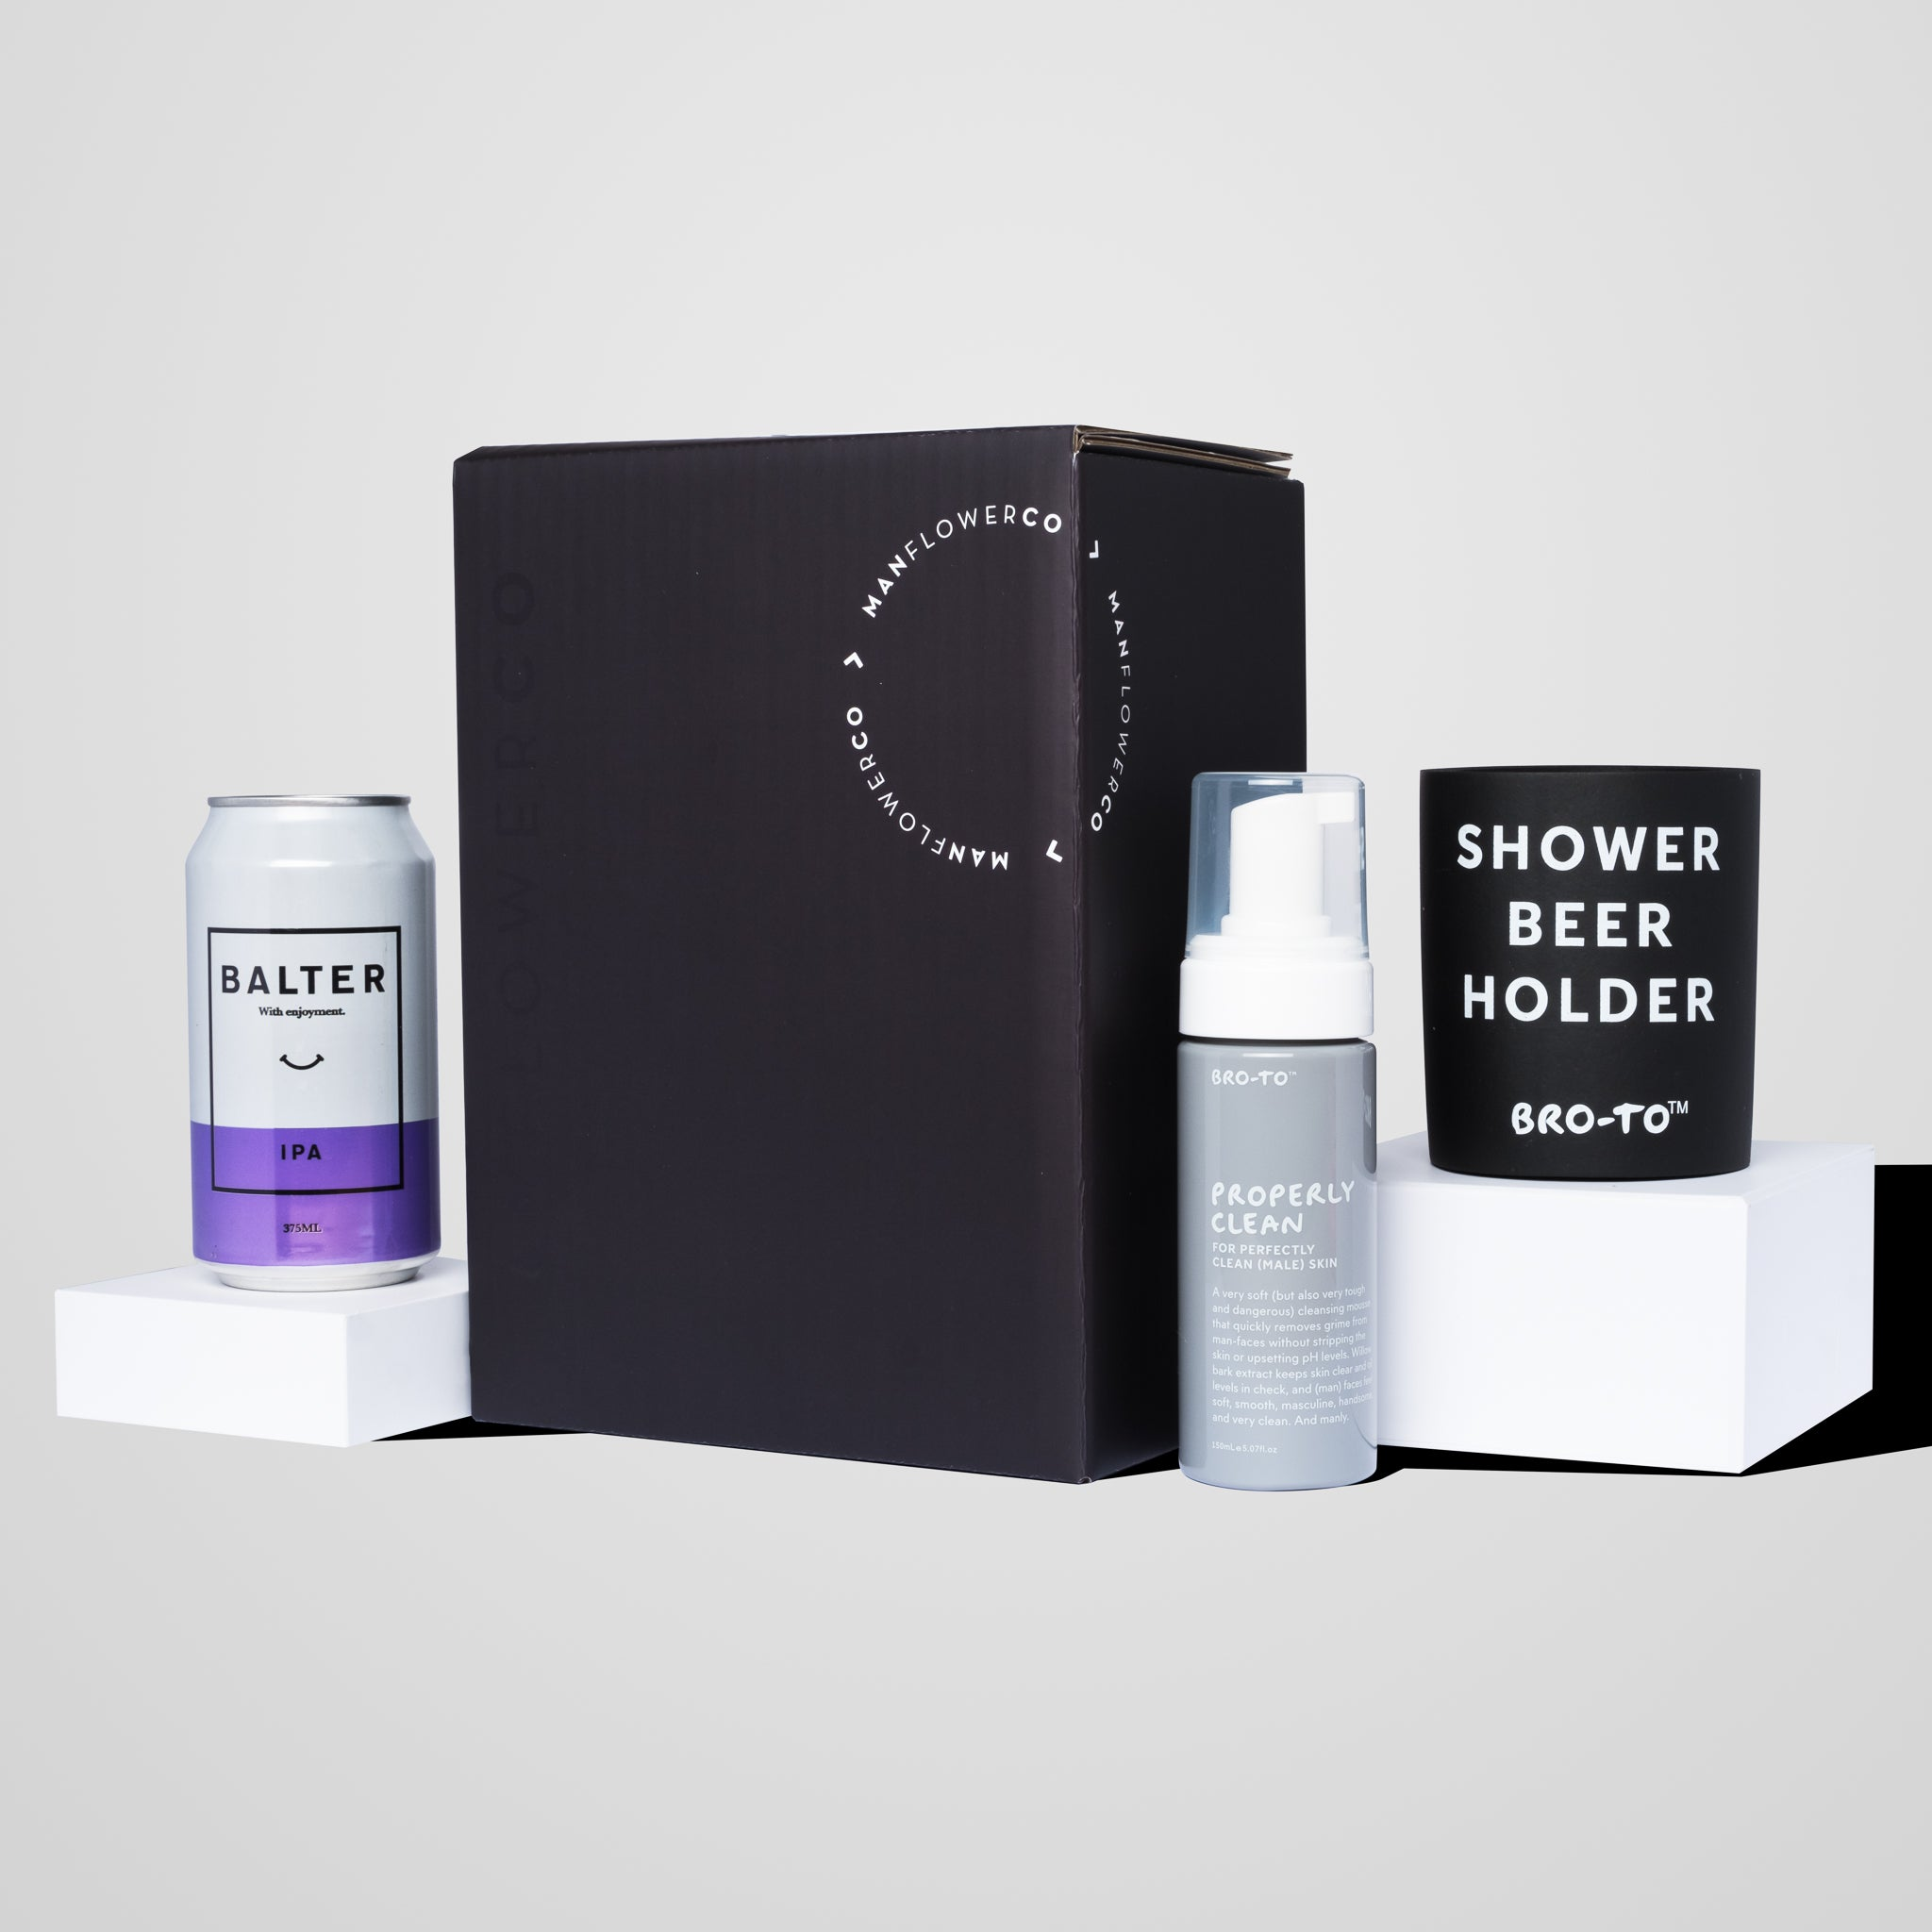 Image of Manflower Co gift box featuring Go-To skin care.